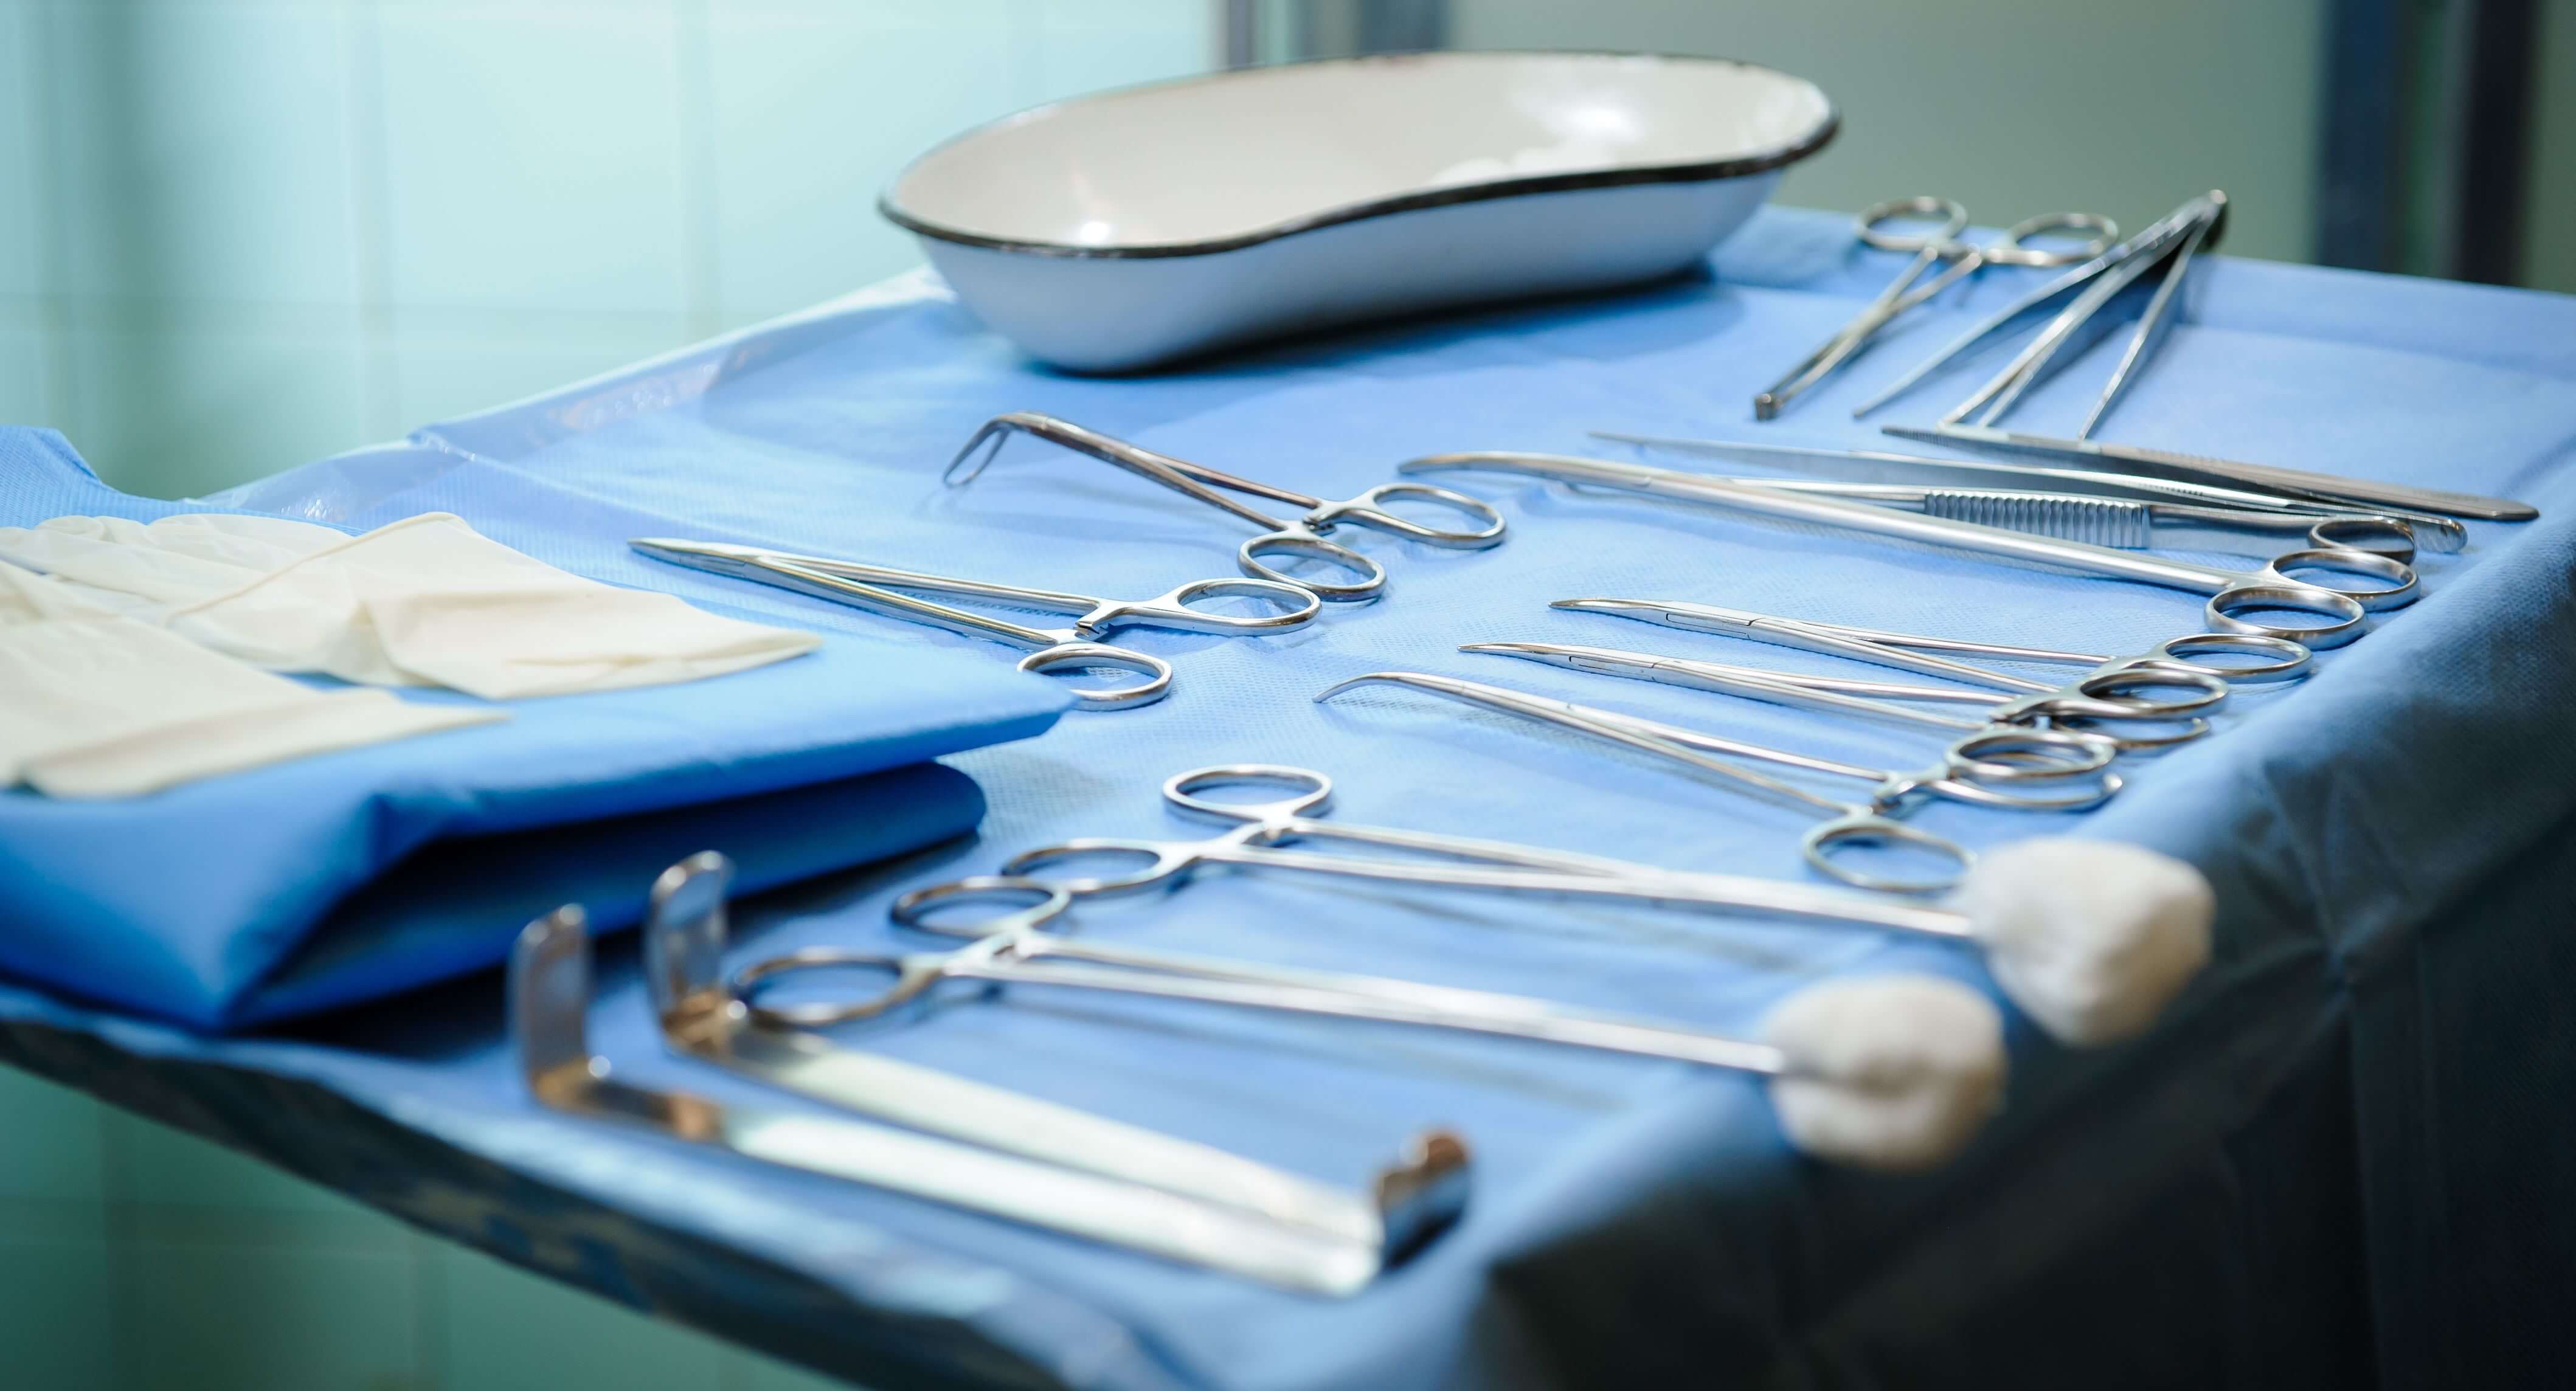 Steels used in surgical tools 1